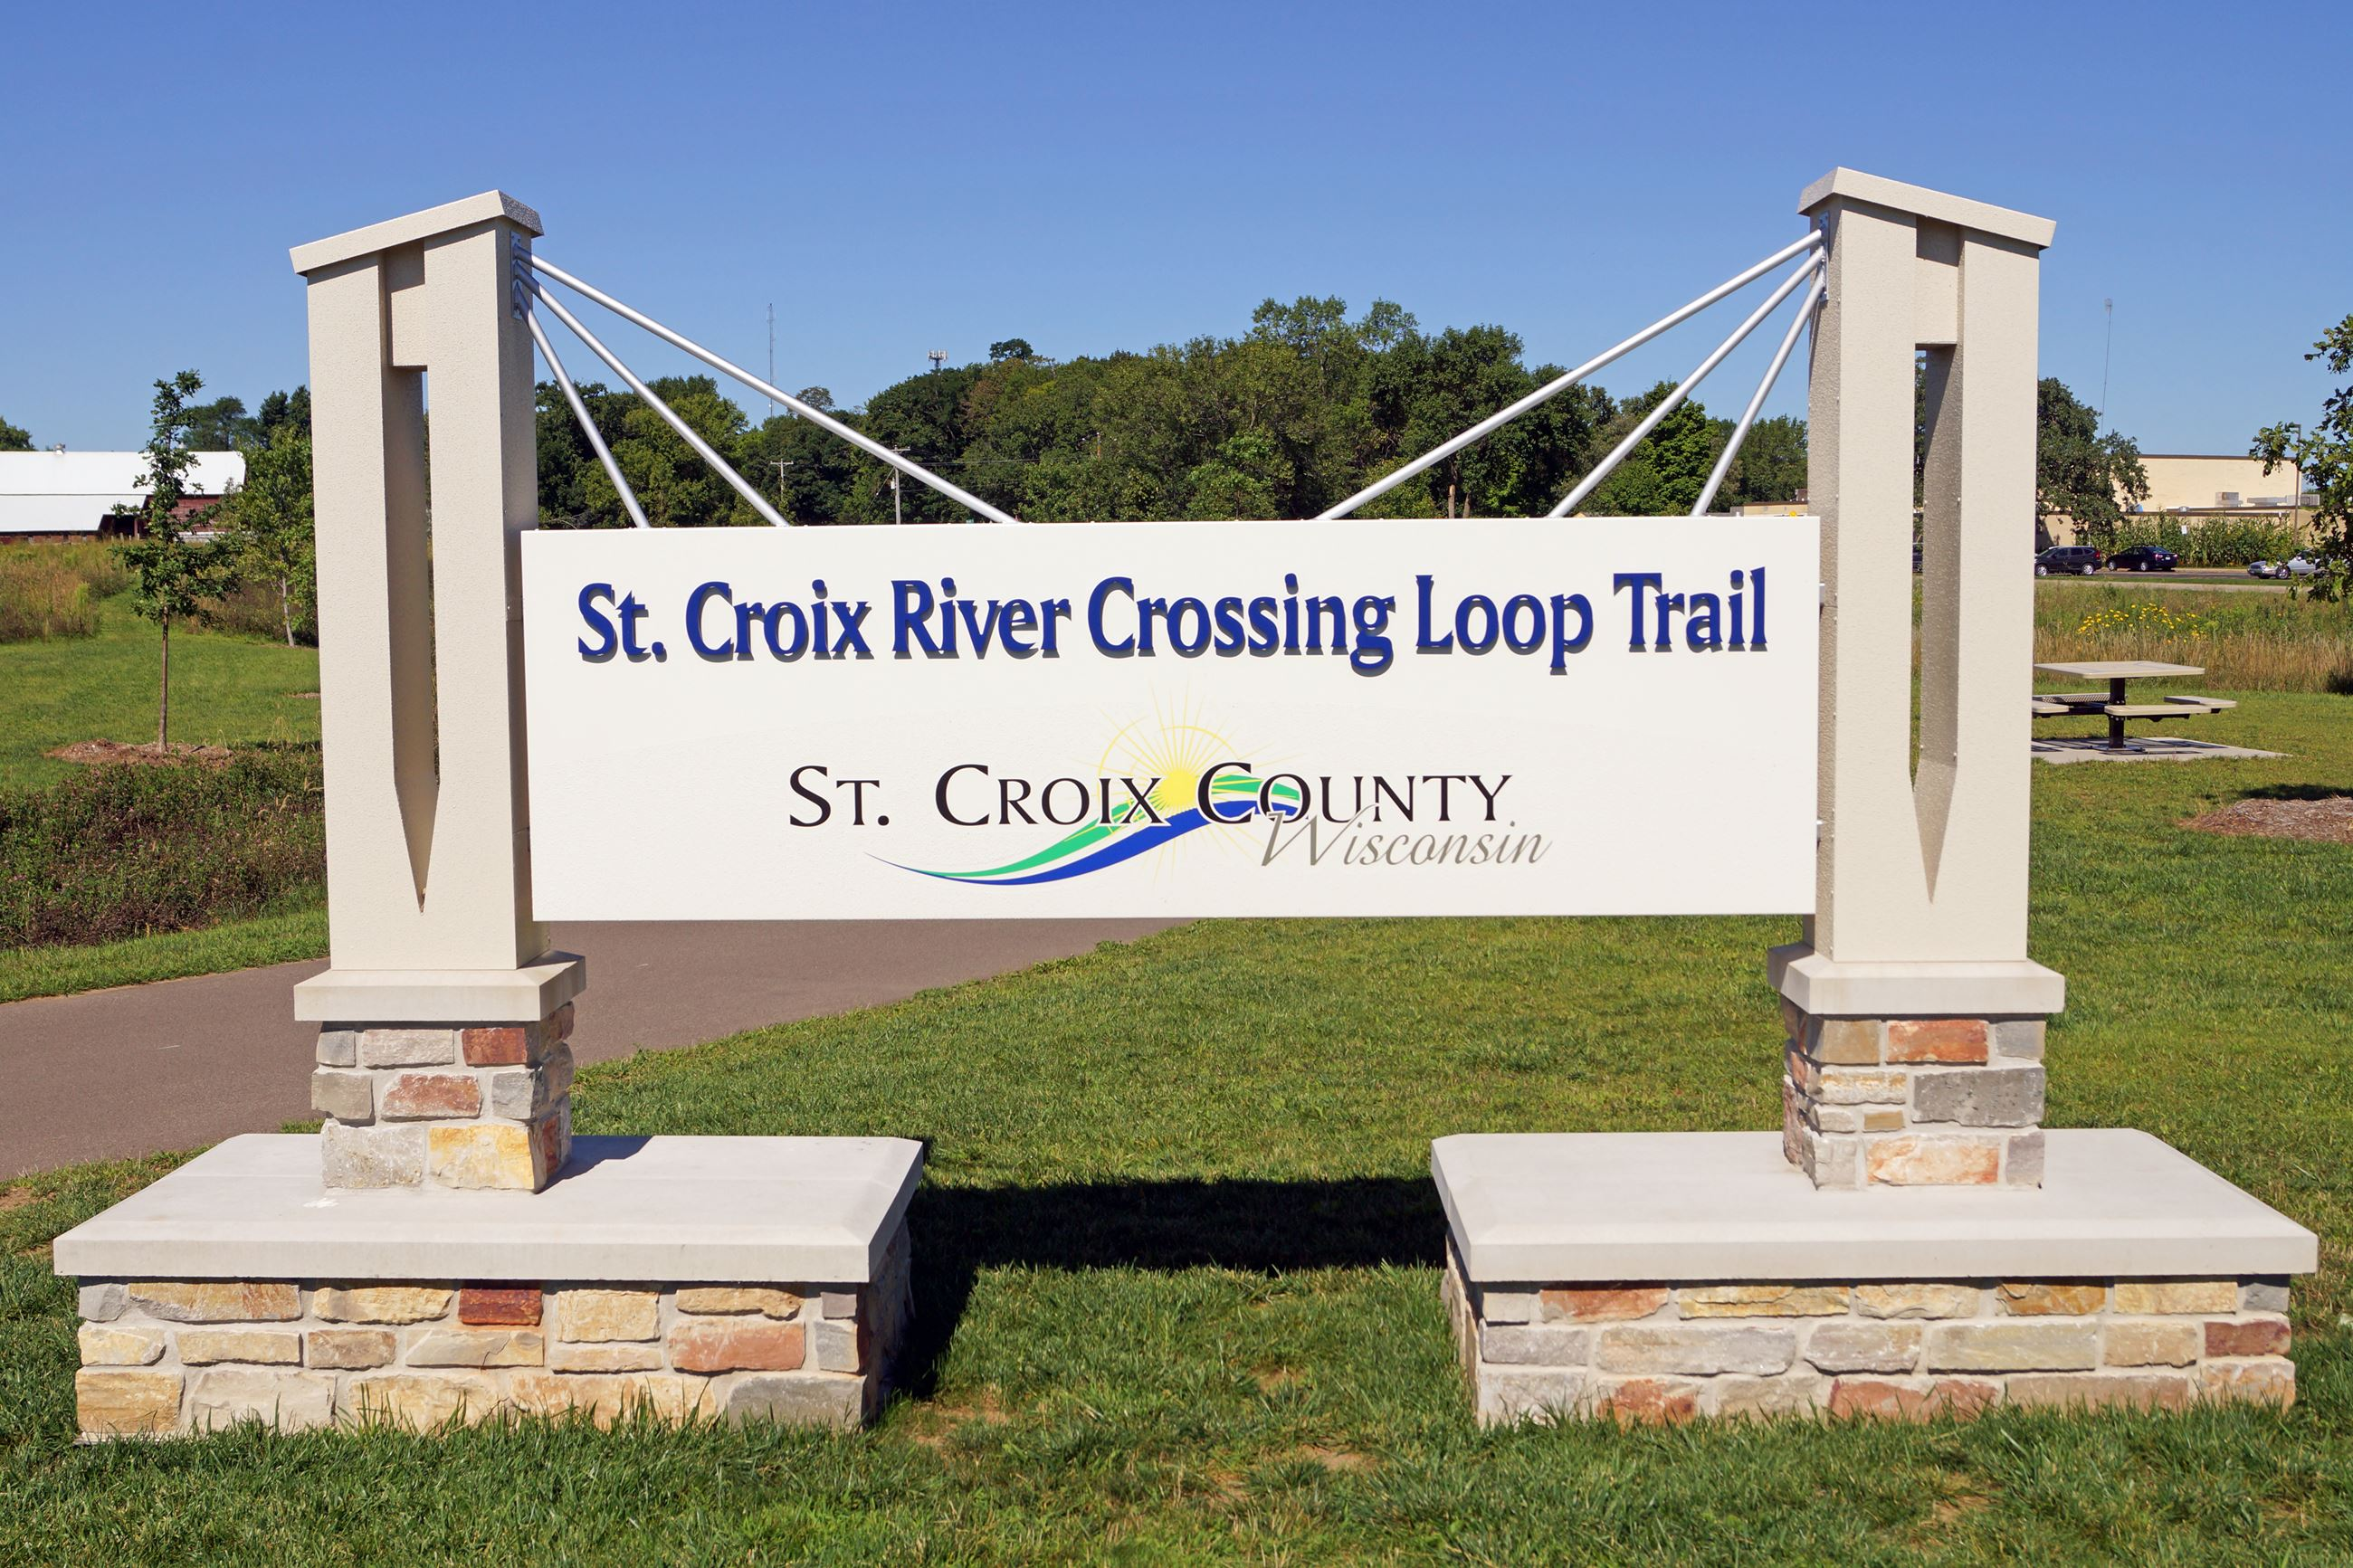 St Croix Crossing Loop Trail Sign